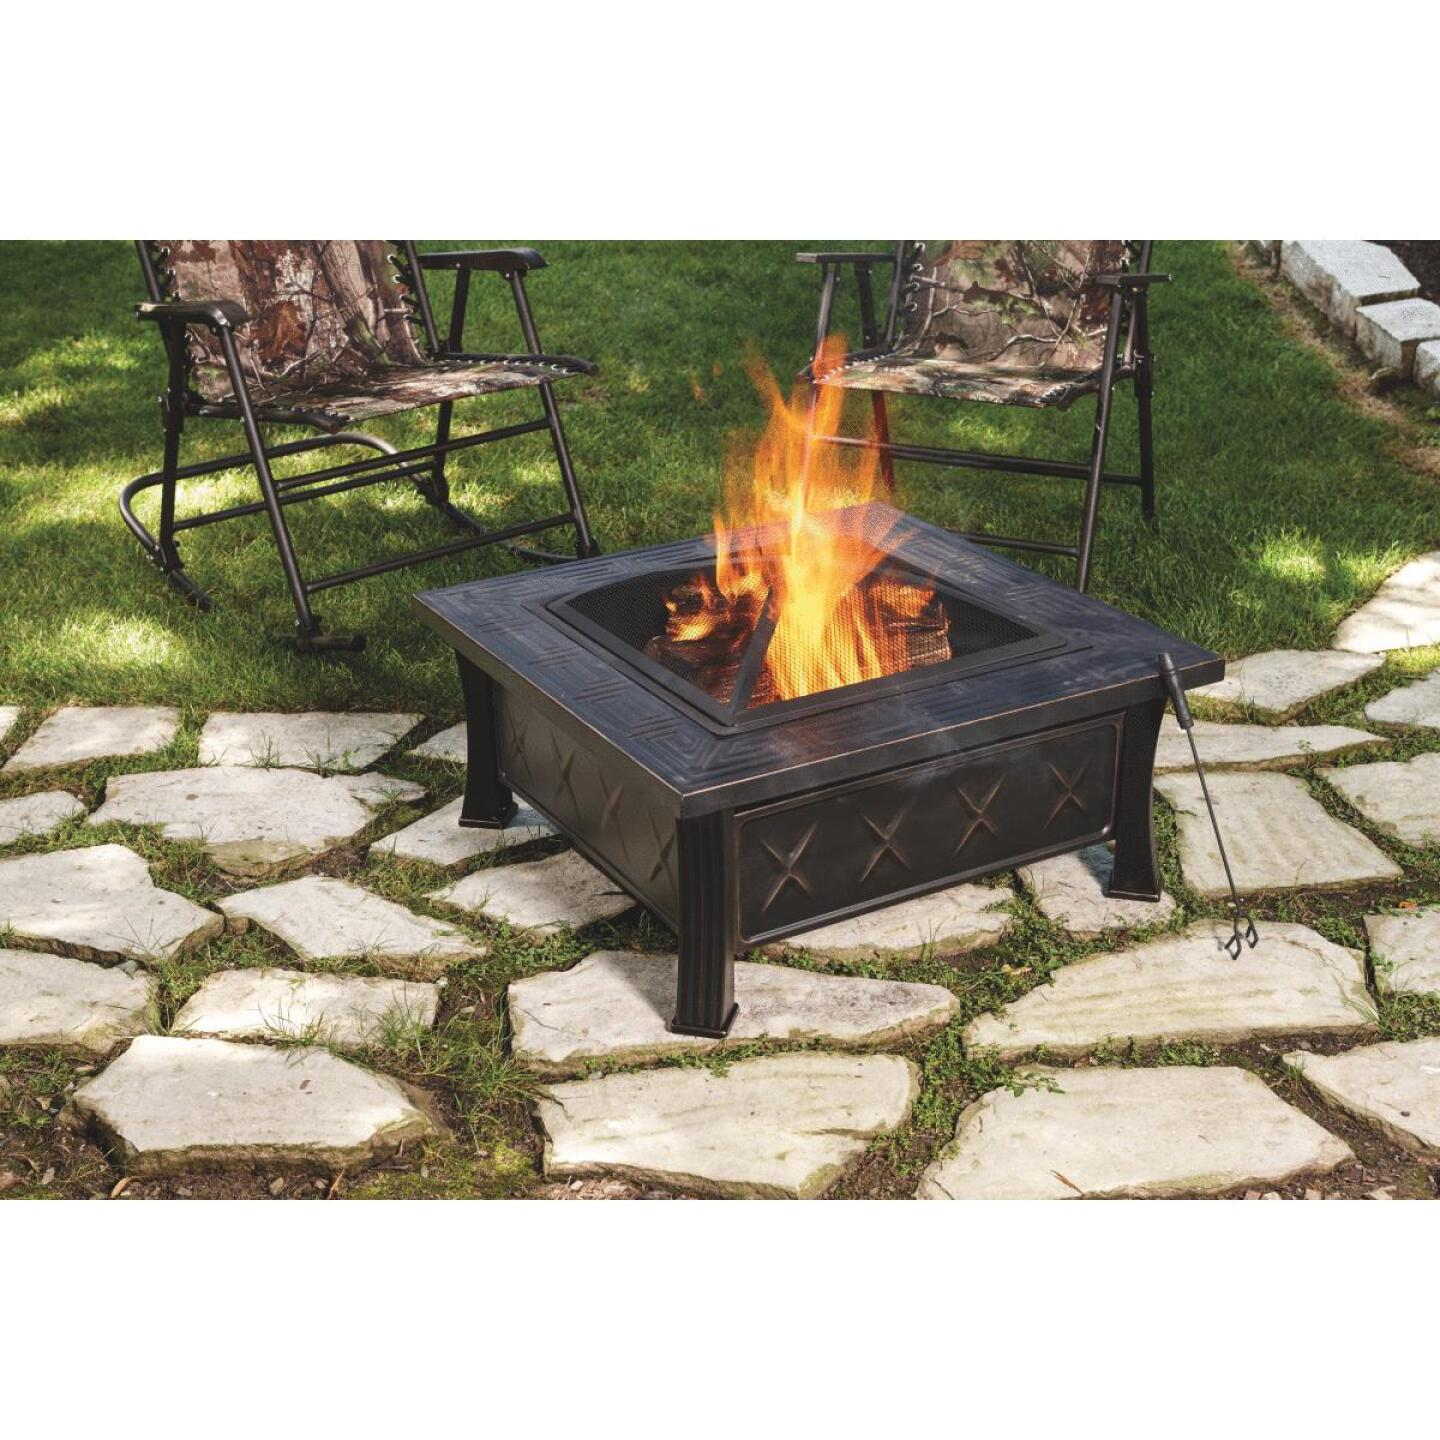 Outdoor Expressions 32 In. Antique Bronze Square Fire Pit Image 3